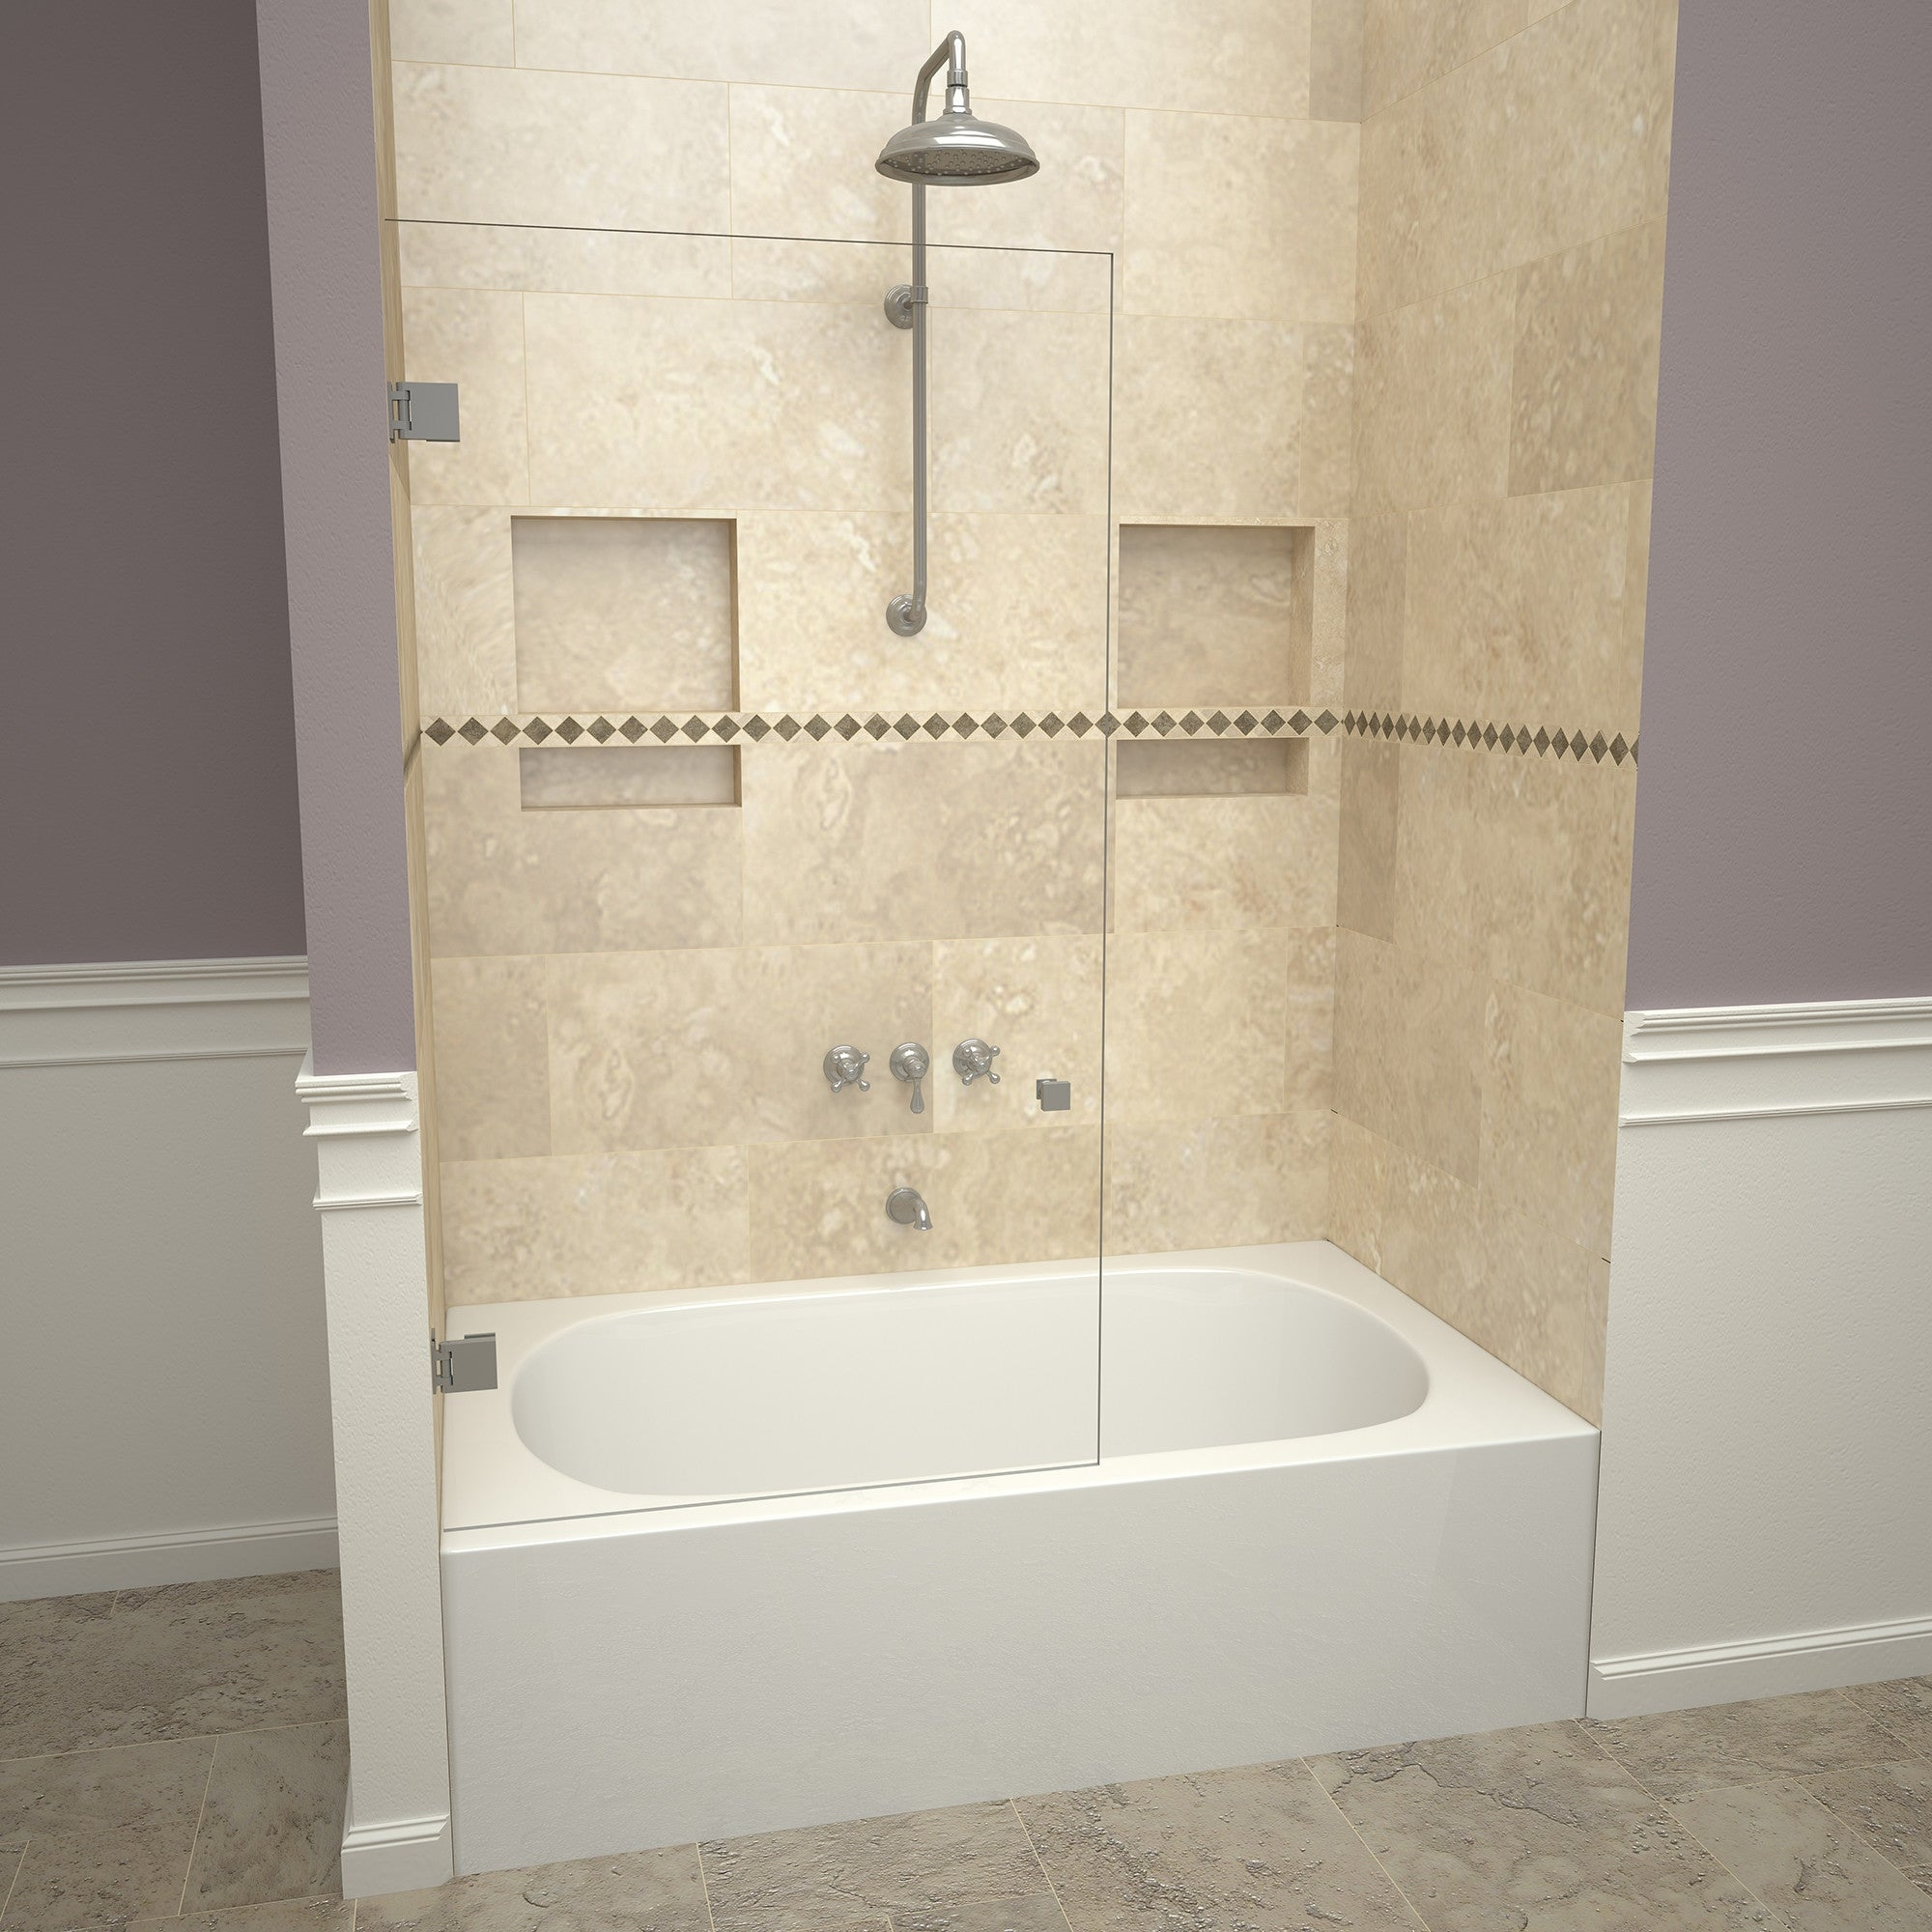 Tile Redi 23vcns03060 Redi Screen 60 High X 30 Wide Hinged Frameless Tub Door